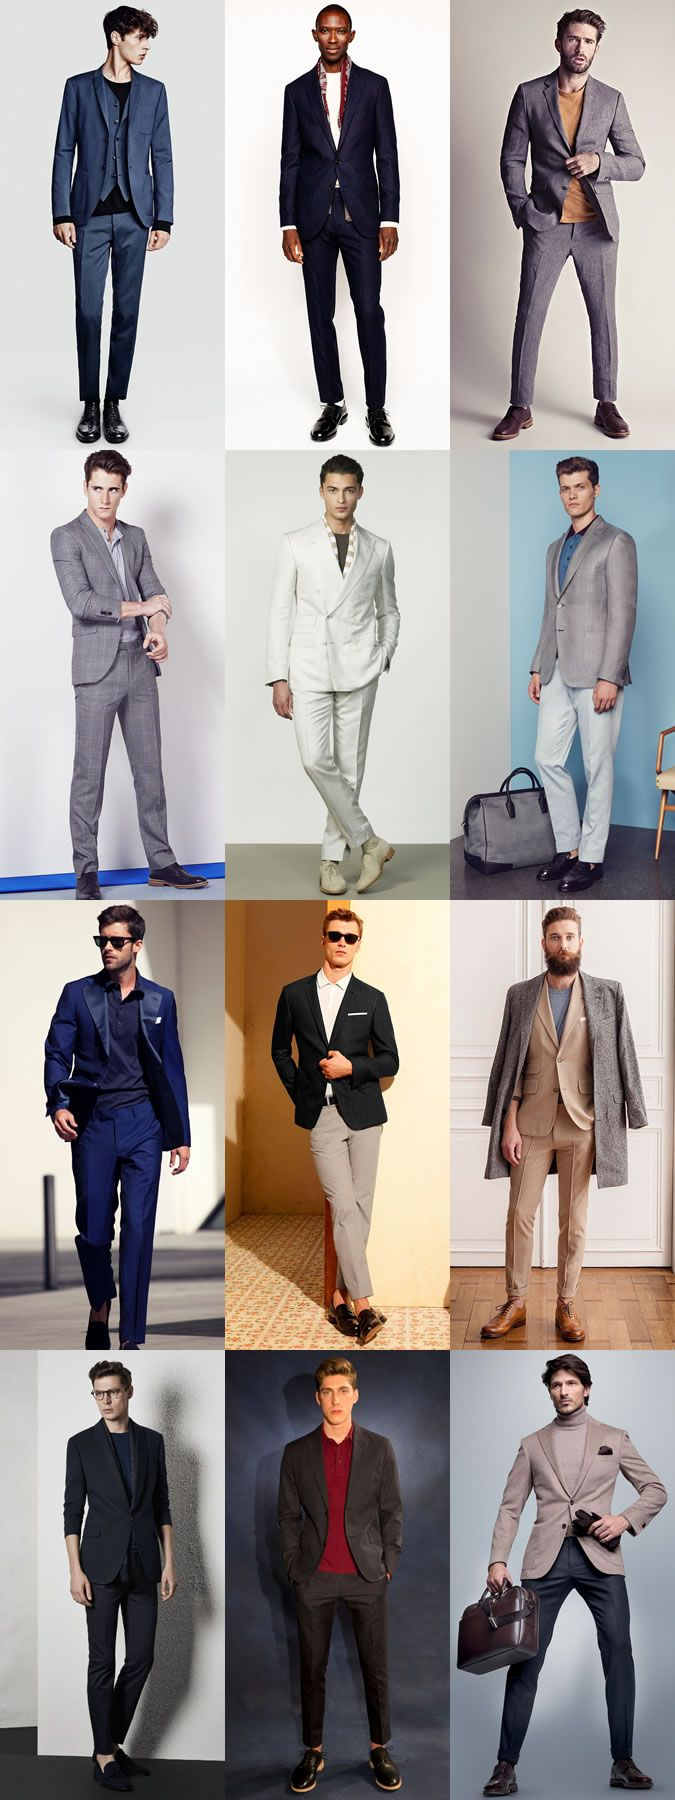 Men s Style Guide  No Tie and No Shirt but T-shirt or Polo Lookbook  Inspiration d9e2a344511